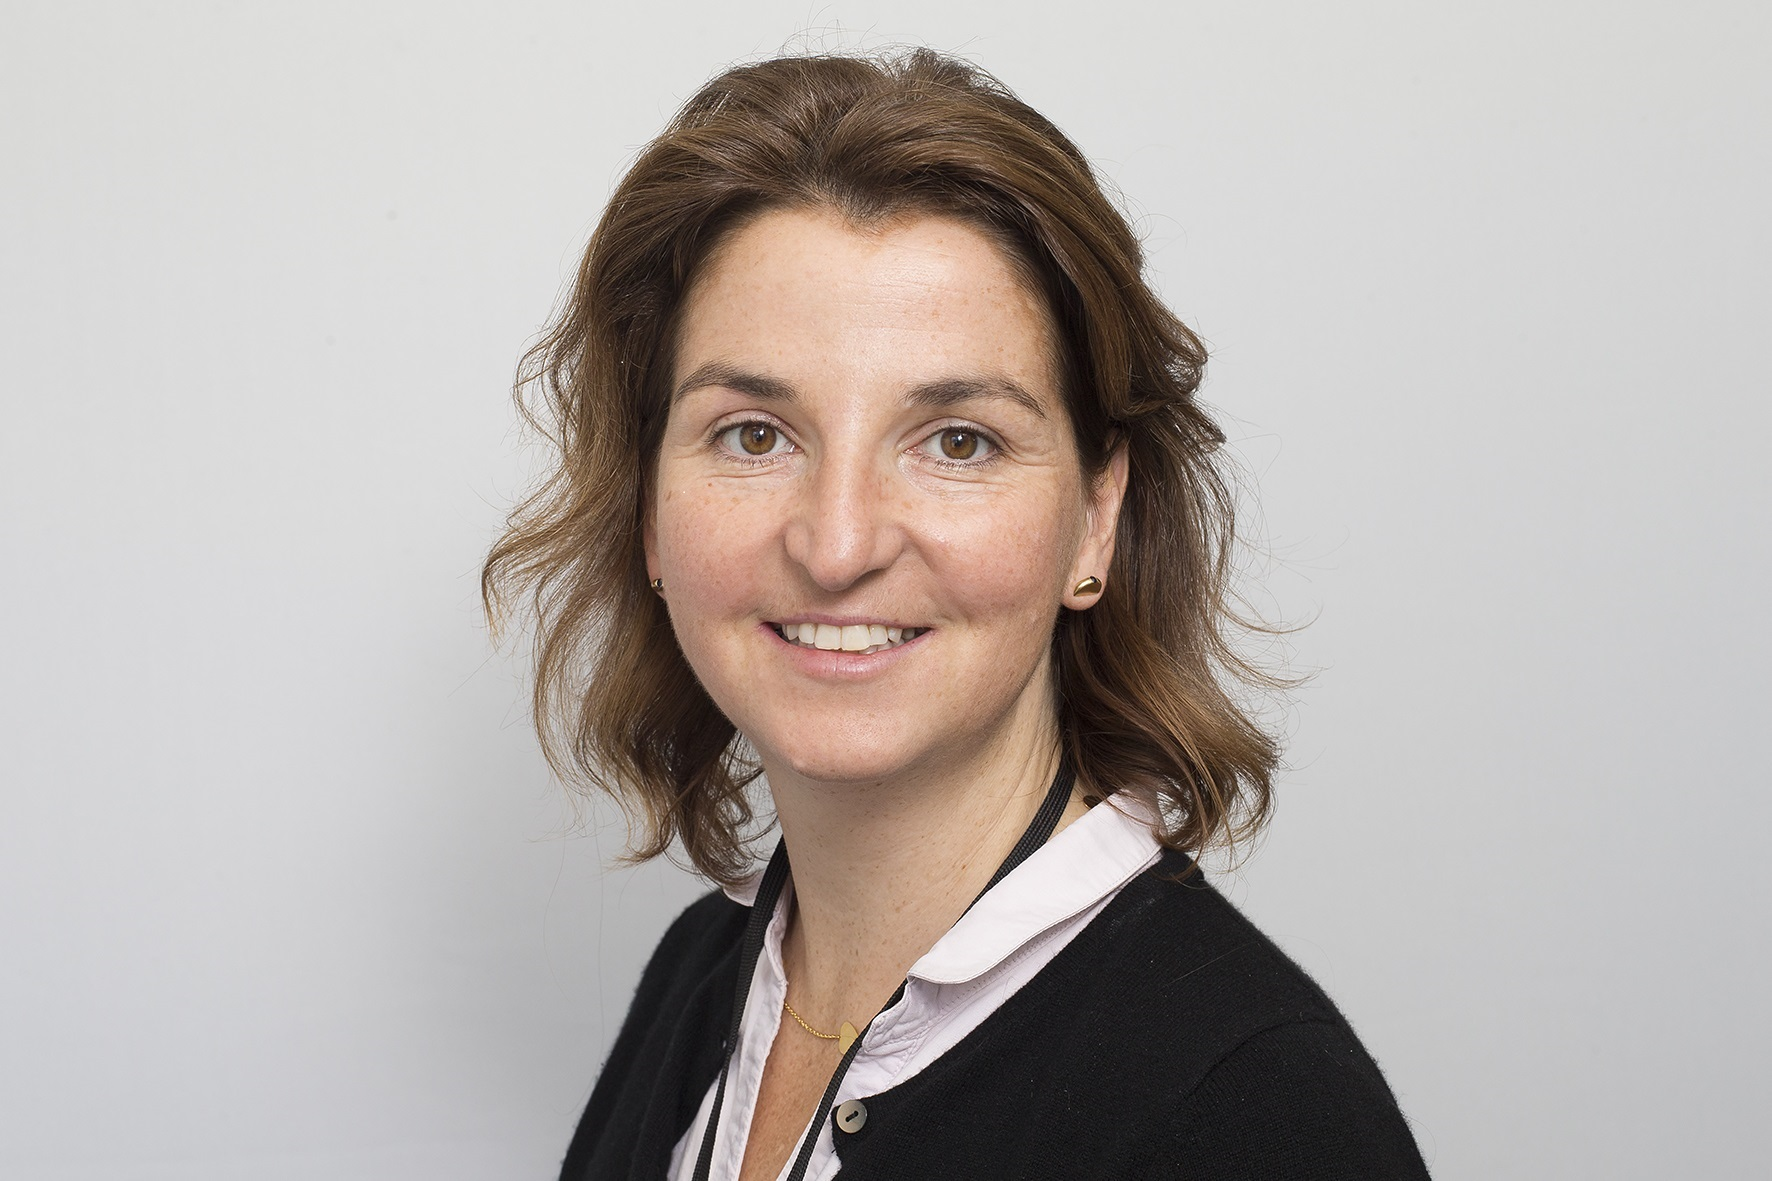 British Business Bank Appoints Elizabeth O'Neill as General Counsel